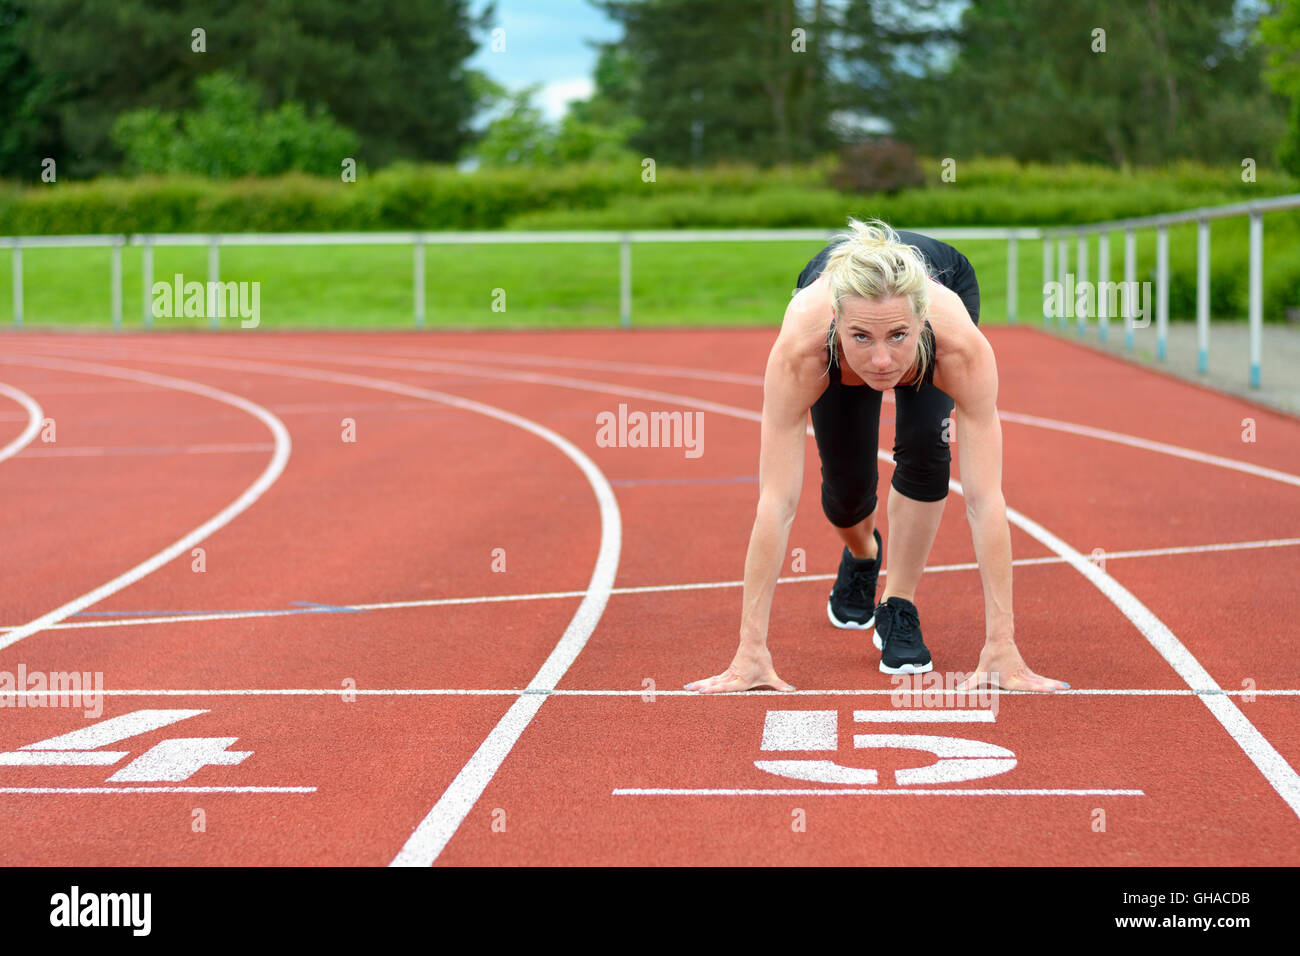 Athletic woman crouched down in the starter position on a race track at a sporting venue looking up at the camera - Stock Image